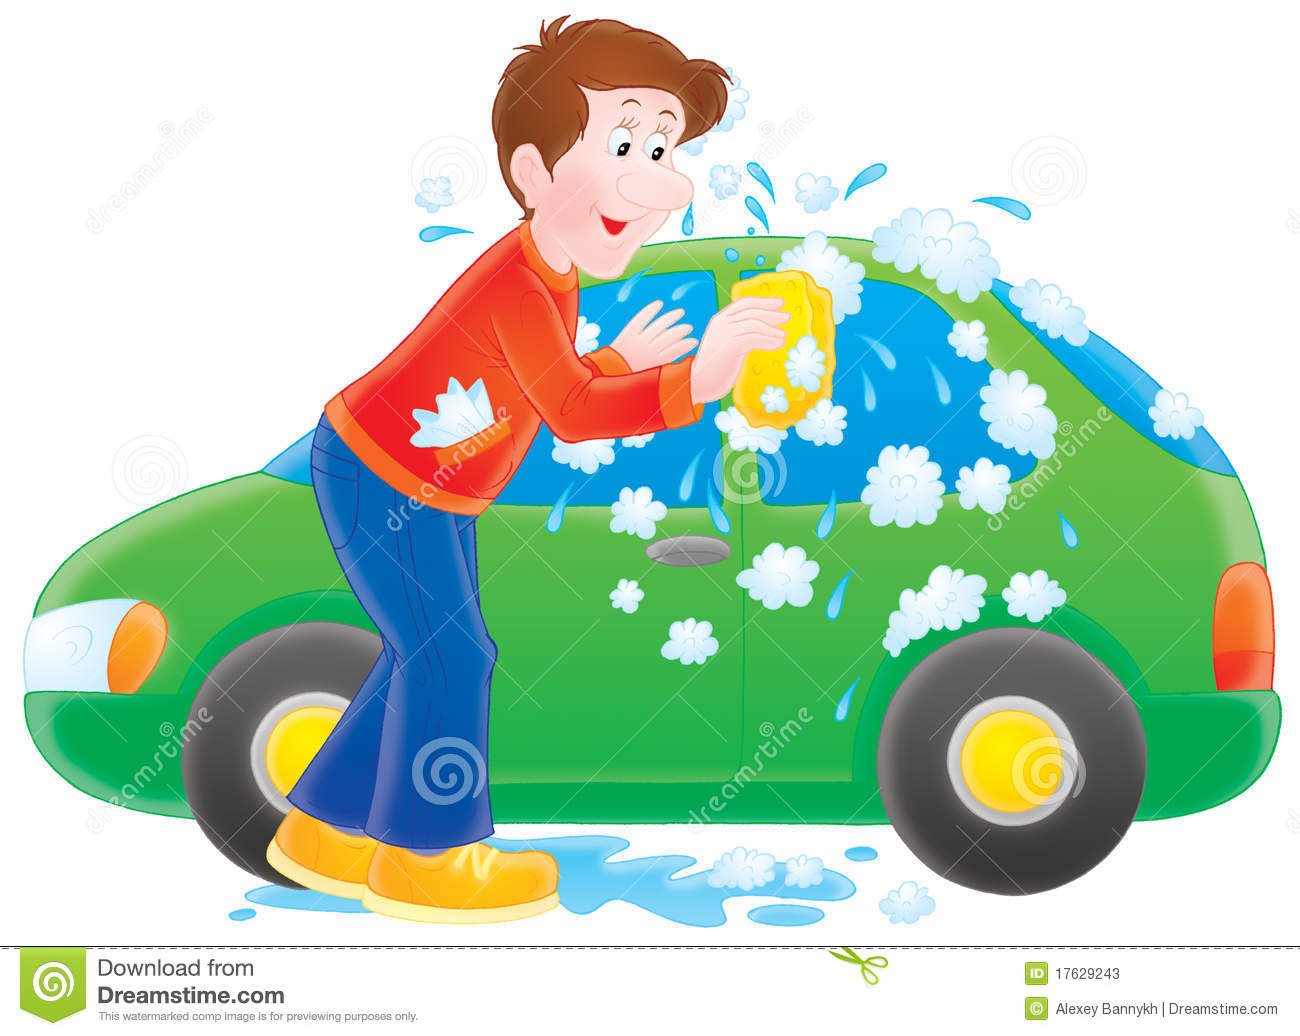 Cars Car Wash Cliparts on Uses Of Water For Kids Clipart